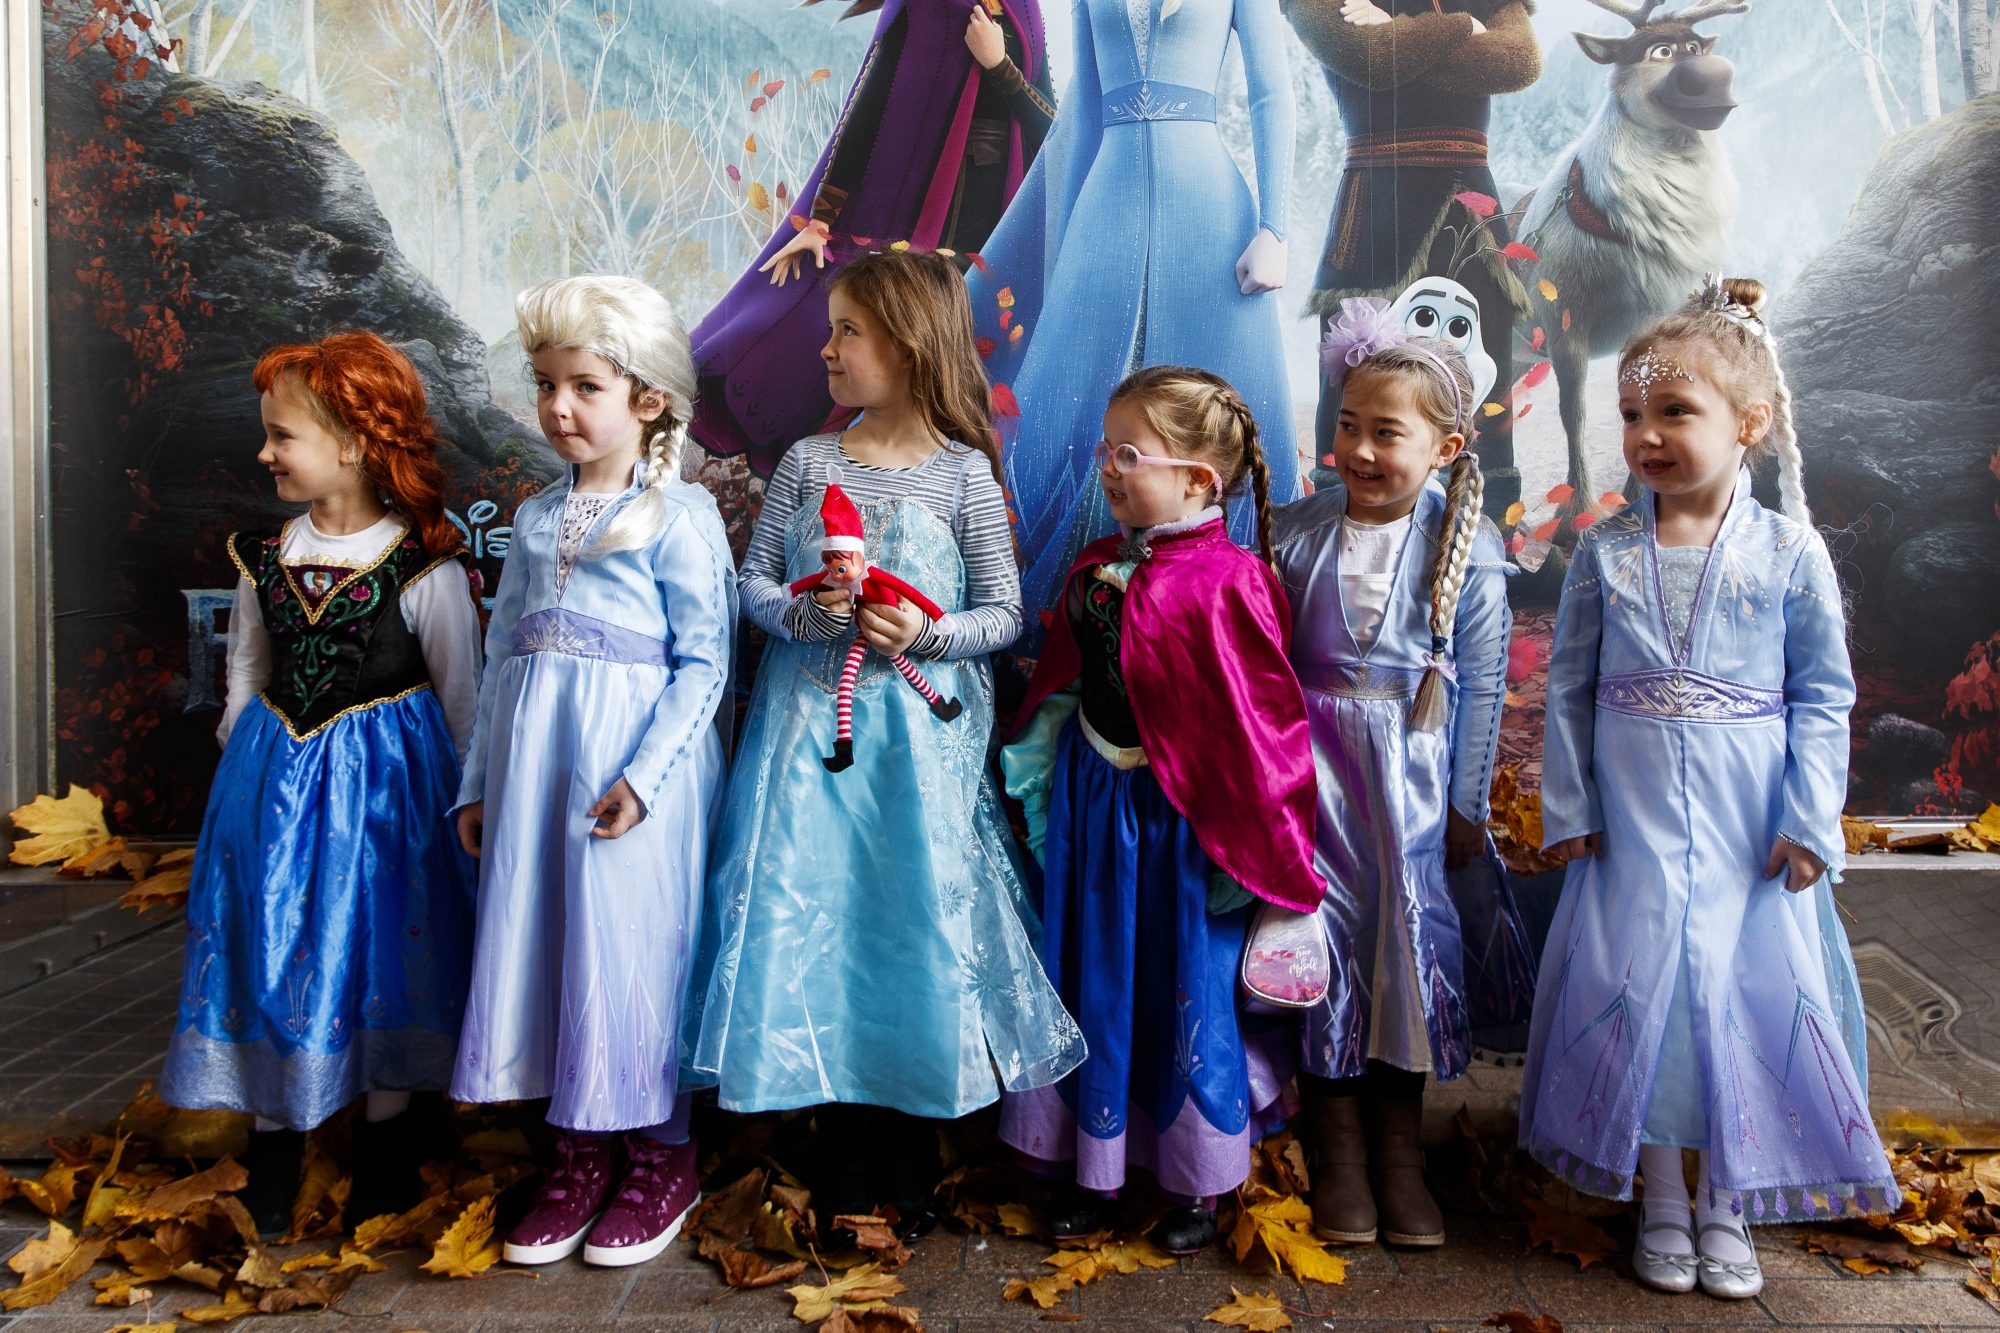 """Little Elsa's Alanah Foran (4), Keeelan Foley (5), Maddie Blake (6), Molly Younger (4), Mollie Smith (5), Lauren Rose McDonald (4), waiting patiently for the doors to open at the special preview screening of Disney's """"Frozen 2"""" at the Light House Cinema, Dublin.  Picture Andres Poveda"""